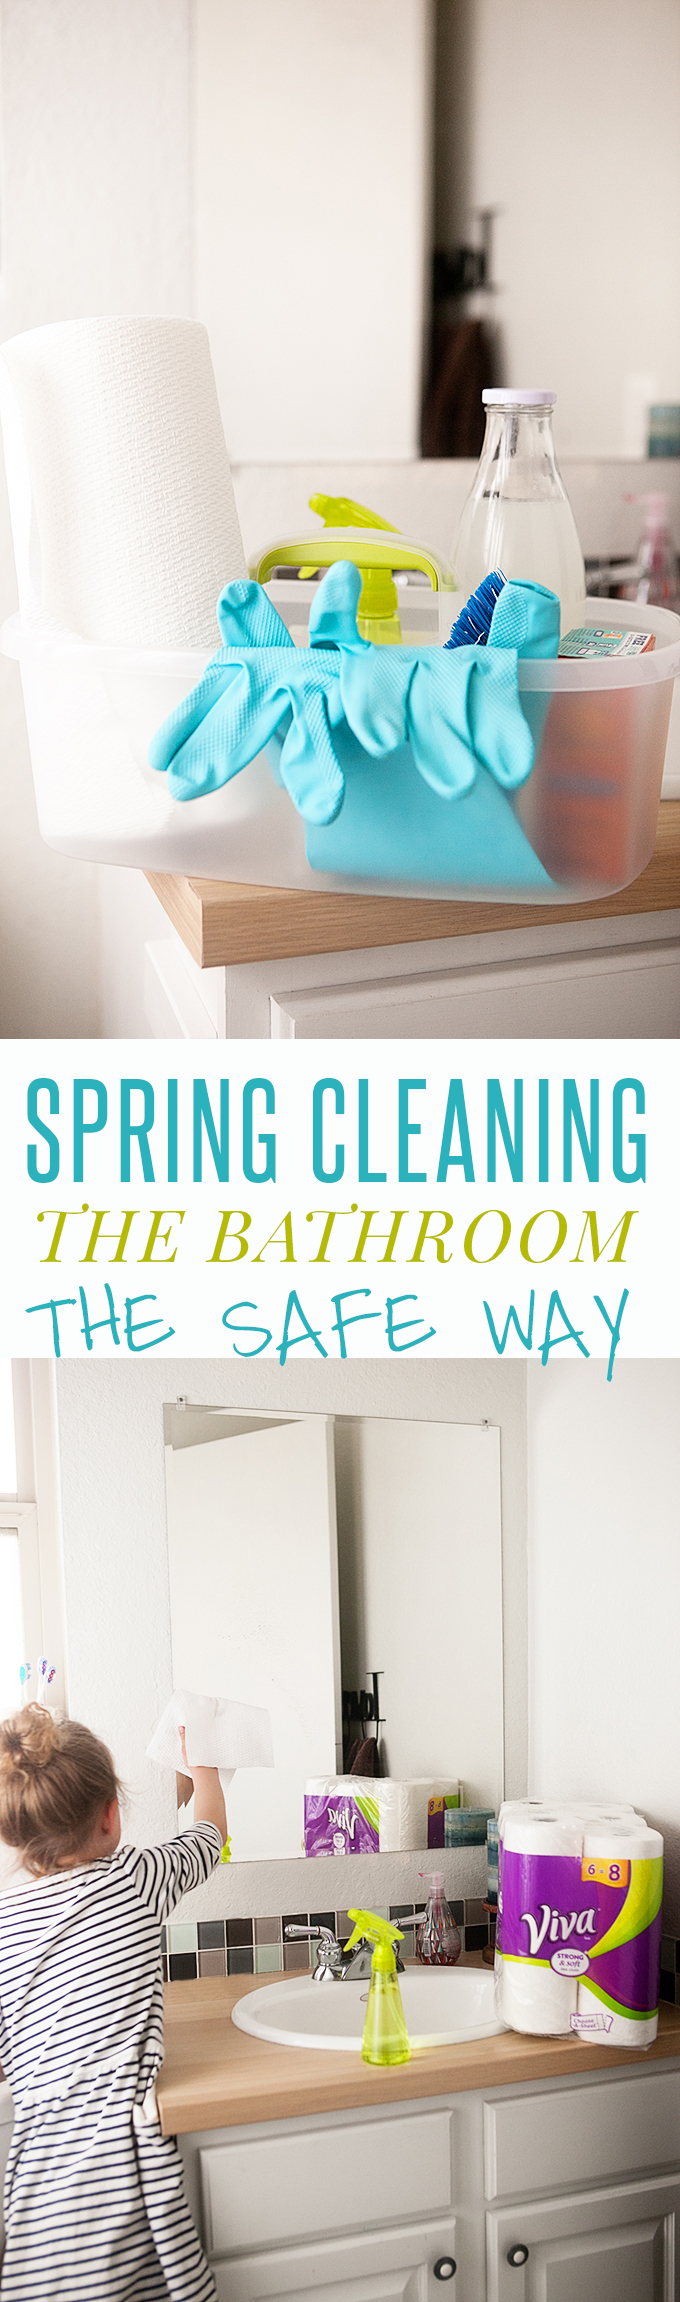 Spring Cleaning the Bathroom: Homemade All Purpose Cleaner and Bathroom Cleaning Tips for the whole family